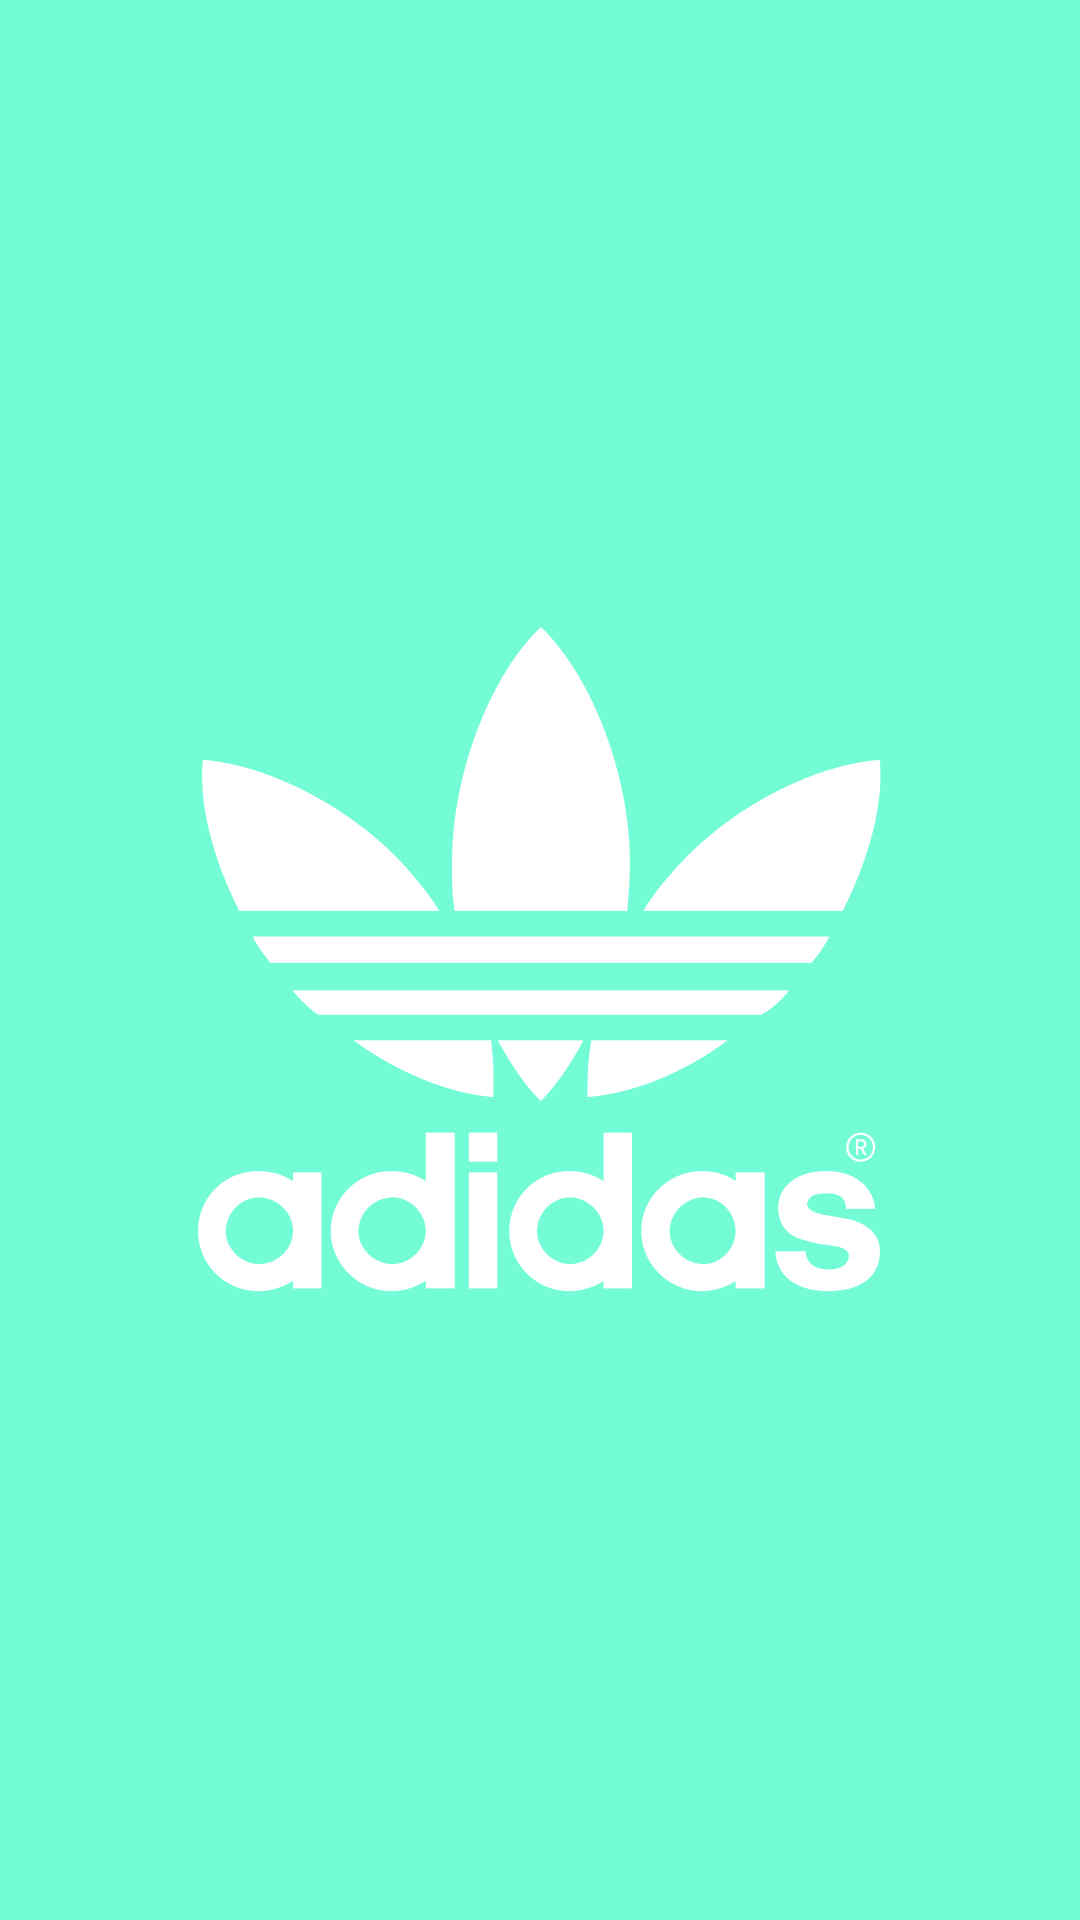 adidas13 - 25 adidas HQ Smartphone Wallpaper Collection